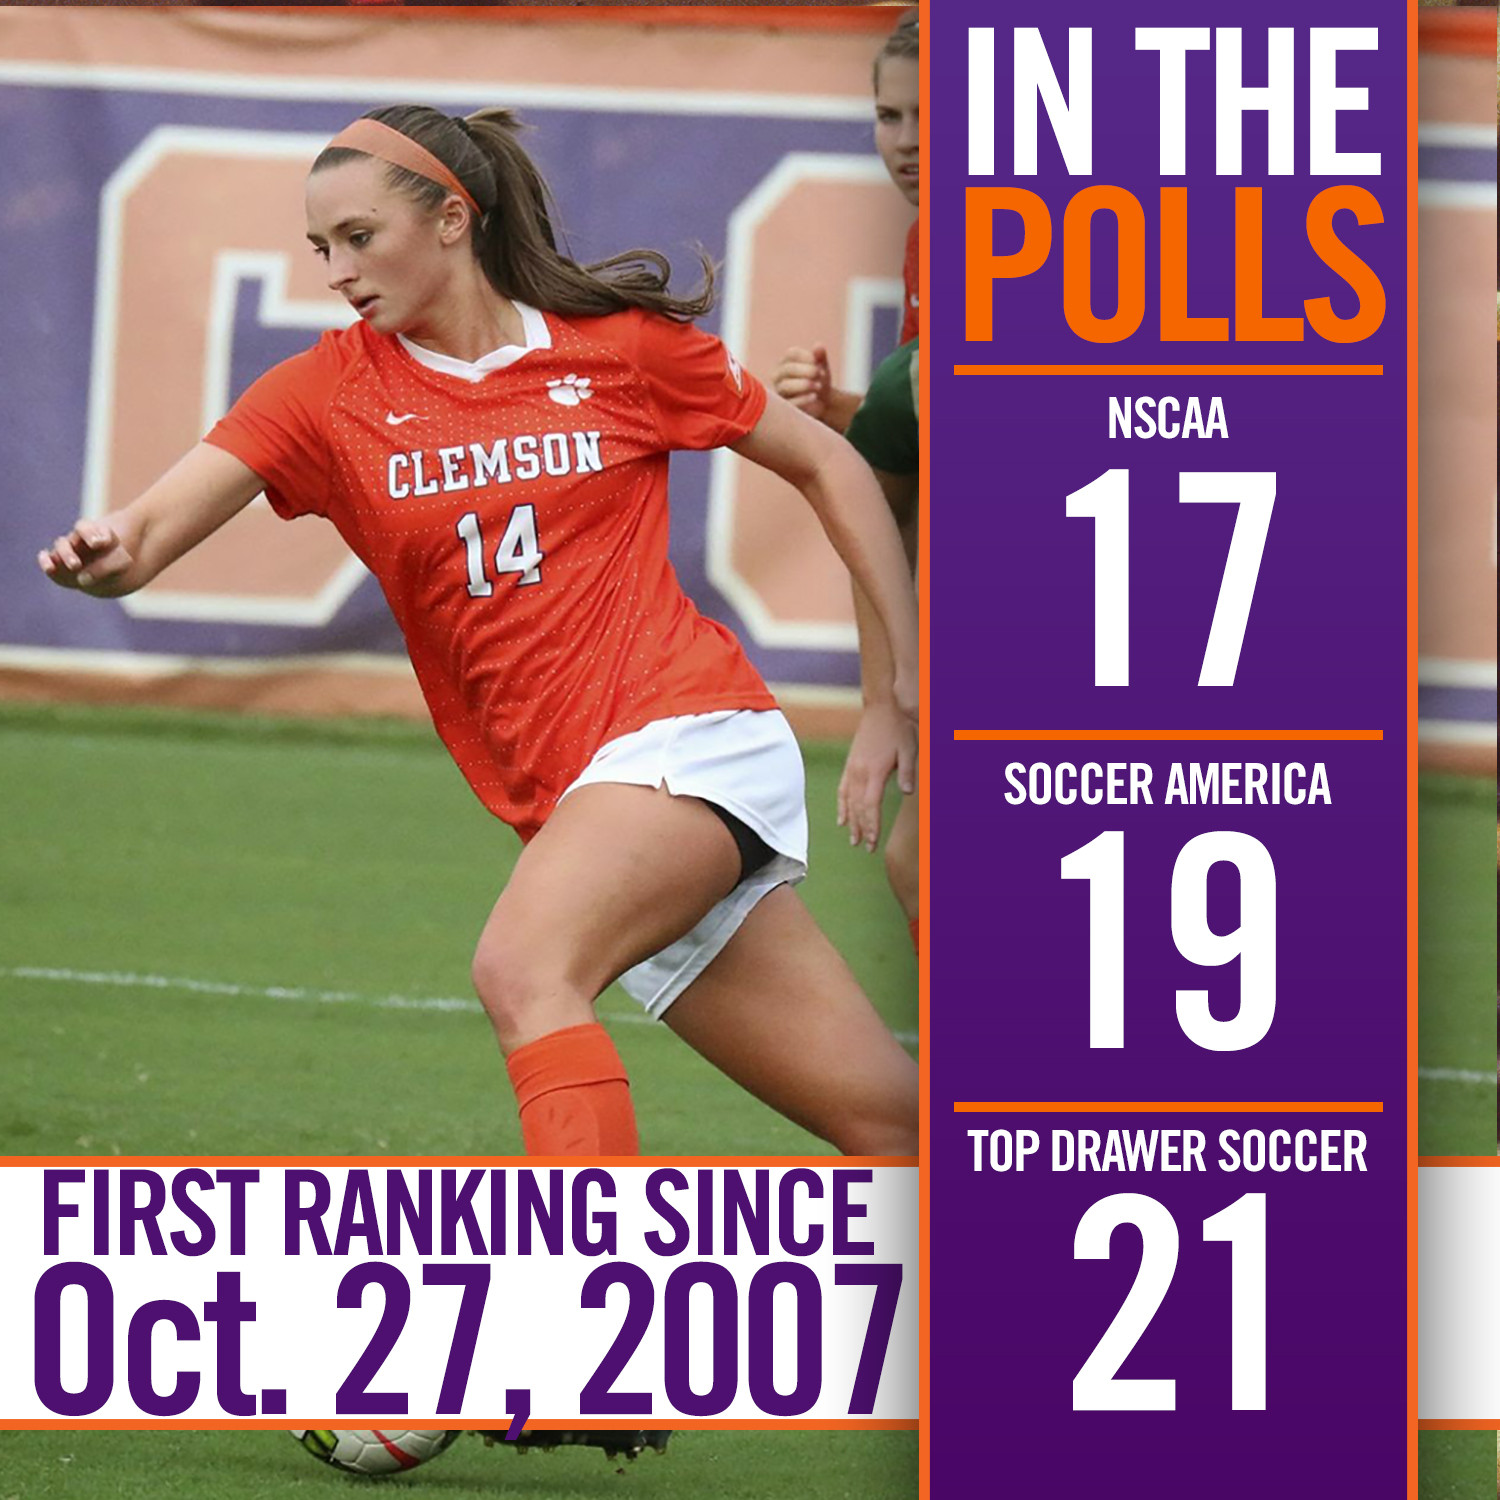 Tigers Ranked No. 17 by NSCAA